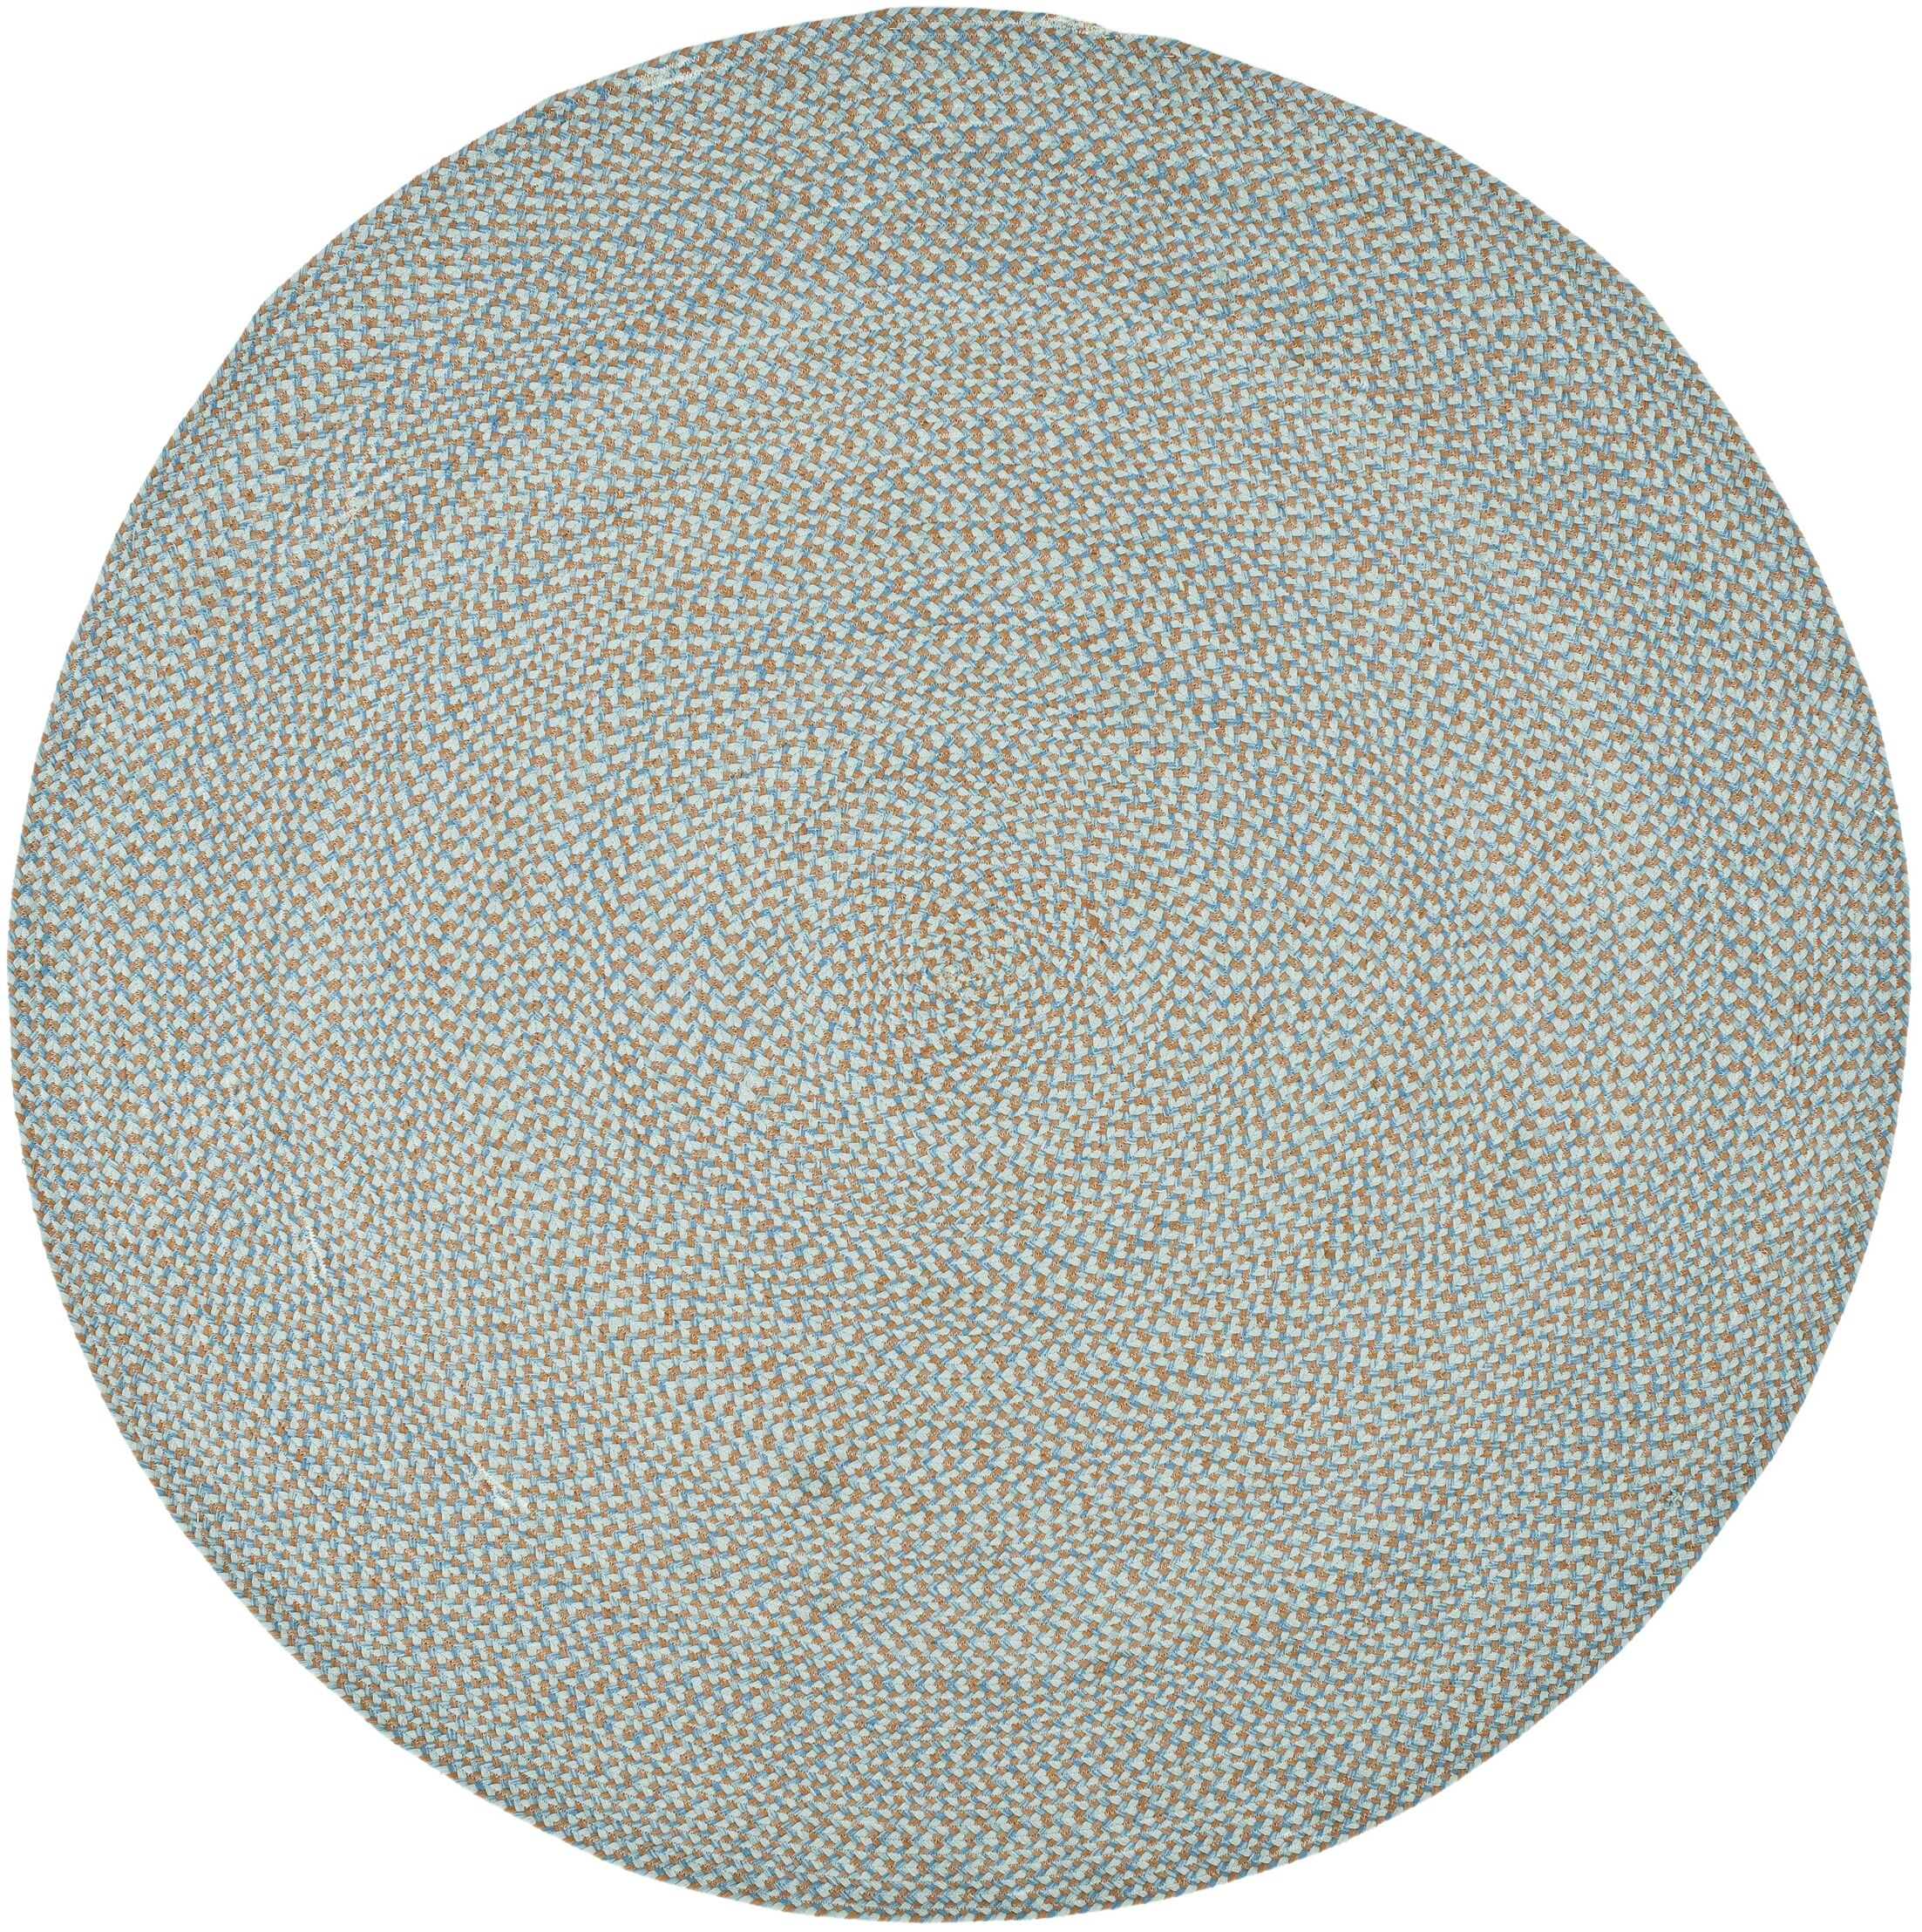 Lissie Hand-Woven Cotton Blue Area Rug Rug Size: Round 6'